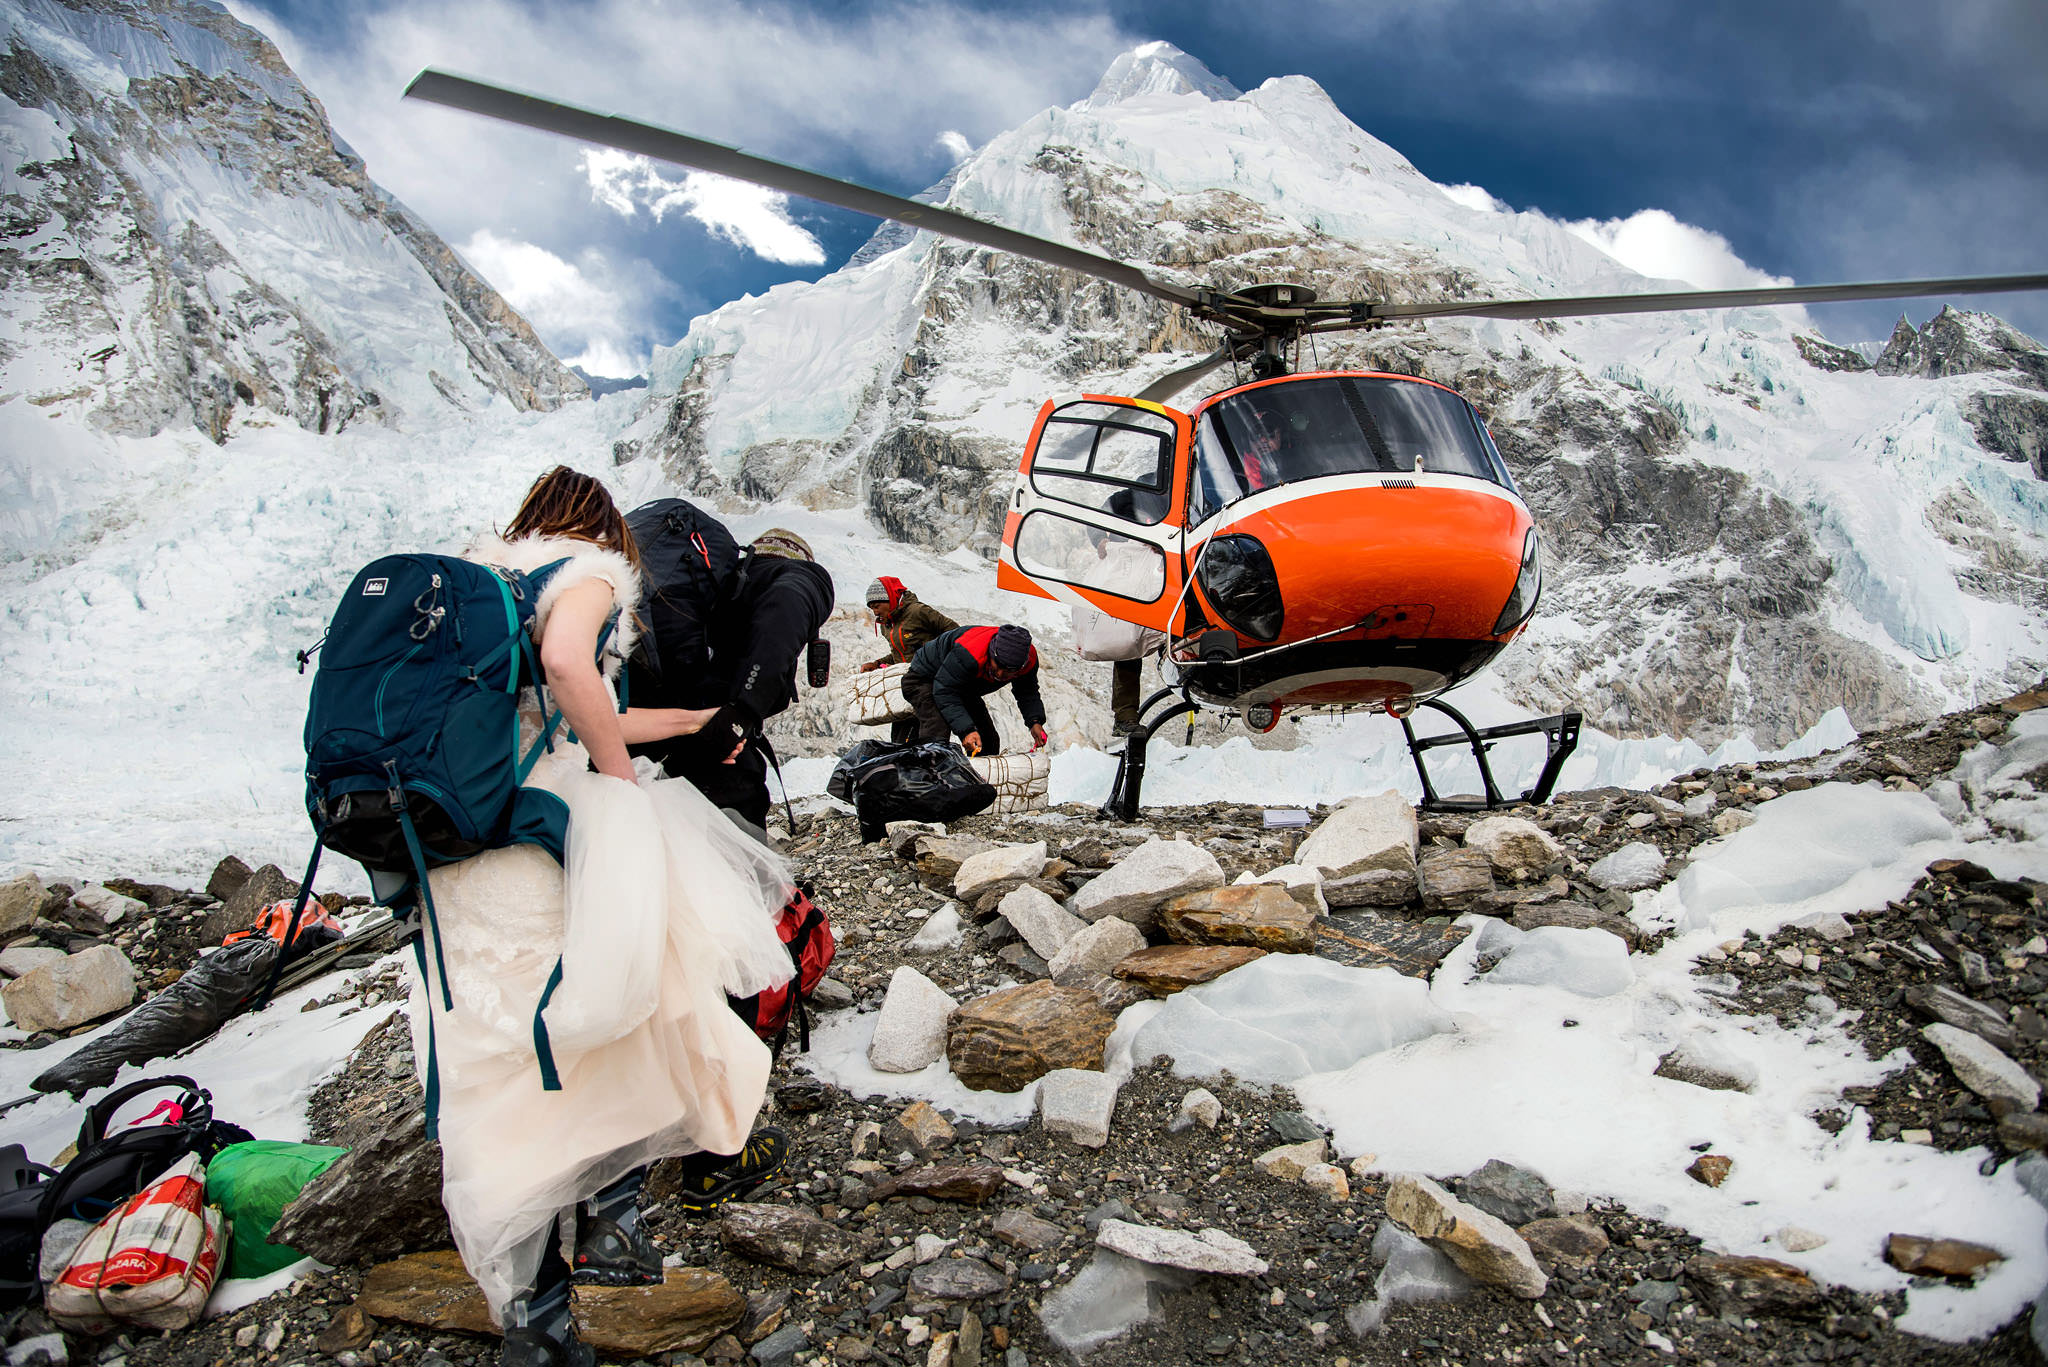 himalayas mt. everest wedding with helicopter escorting couple down the mountain